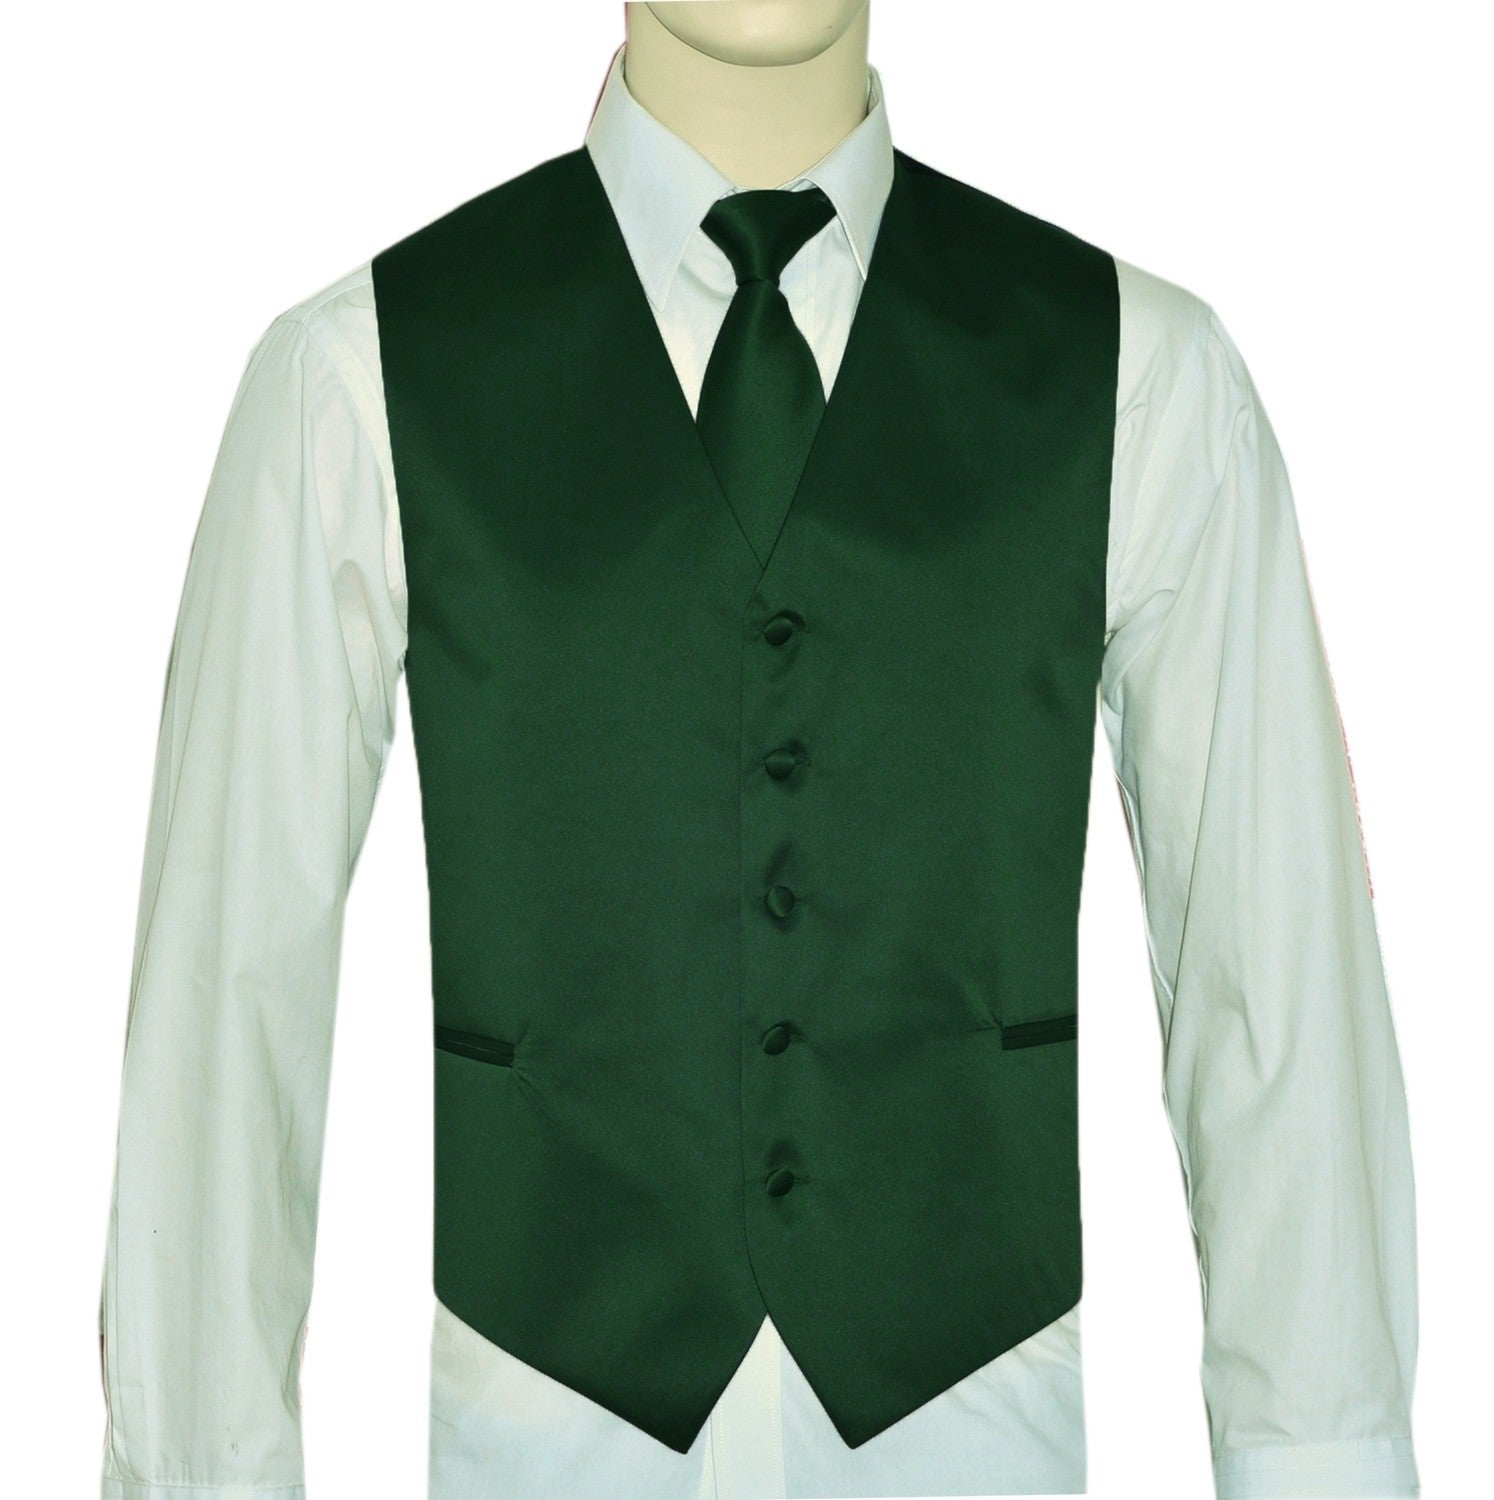 Forest Green Vest and Tie Set